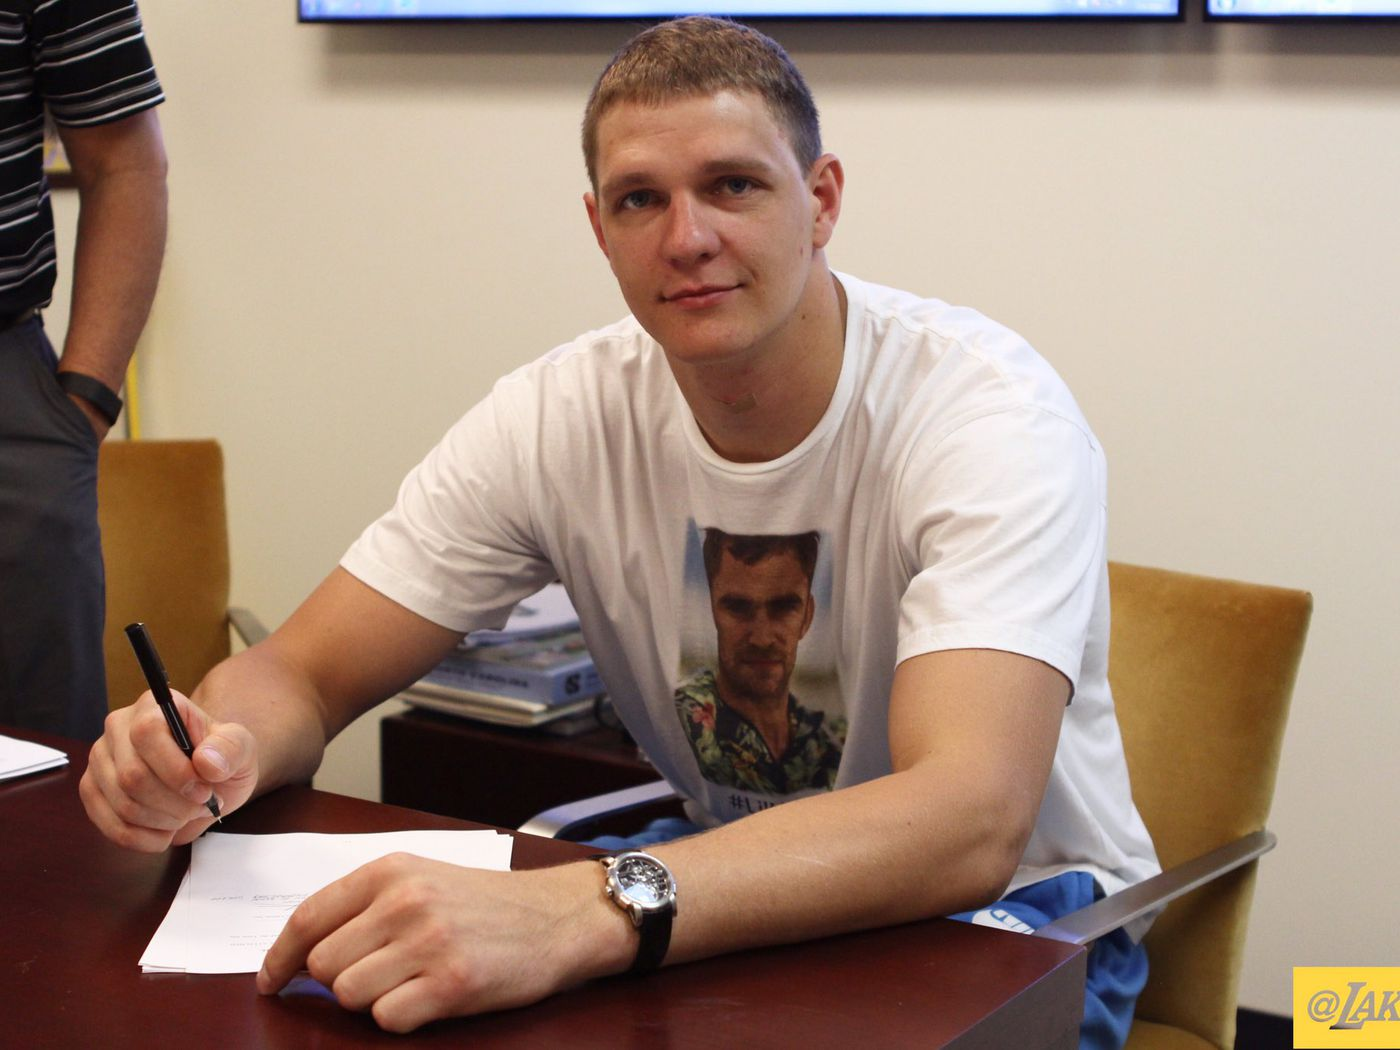 Well-known Timofey Mozgov signed his Lakers contract while wearing a Lil' Kev  IY02